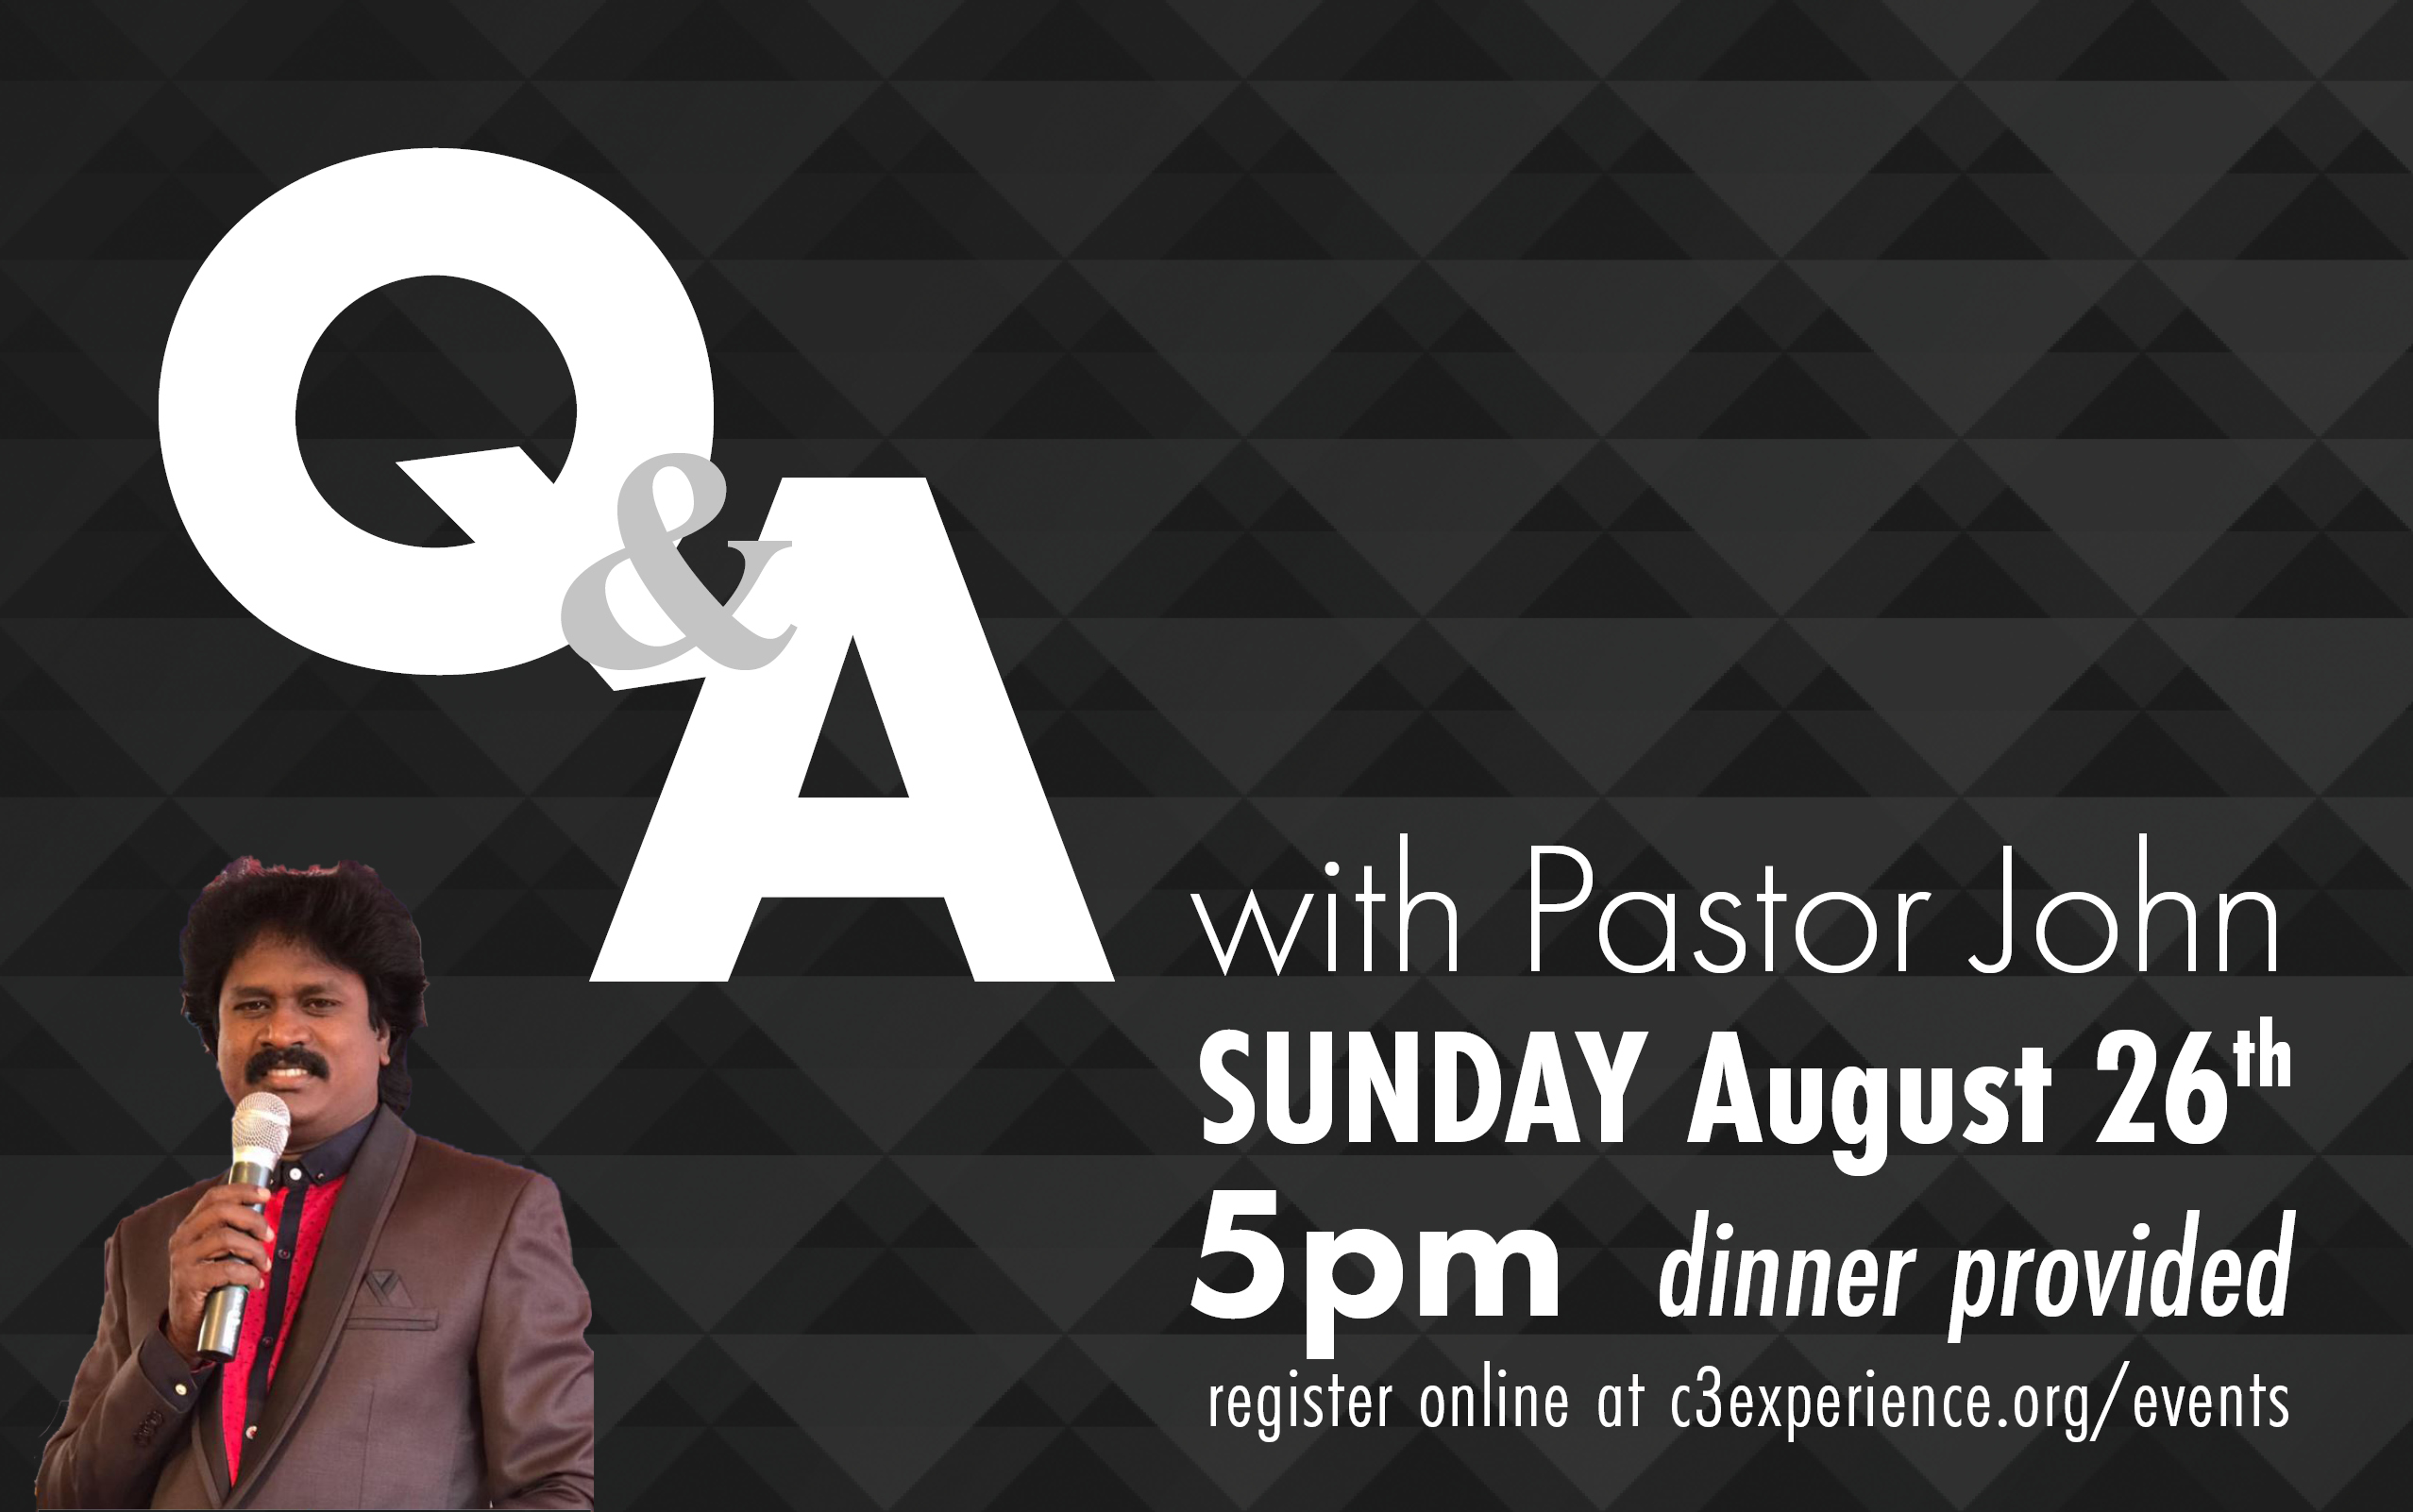 Updatedqanda with pastor john